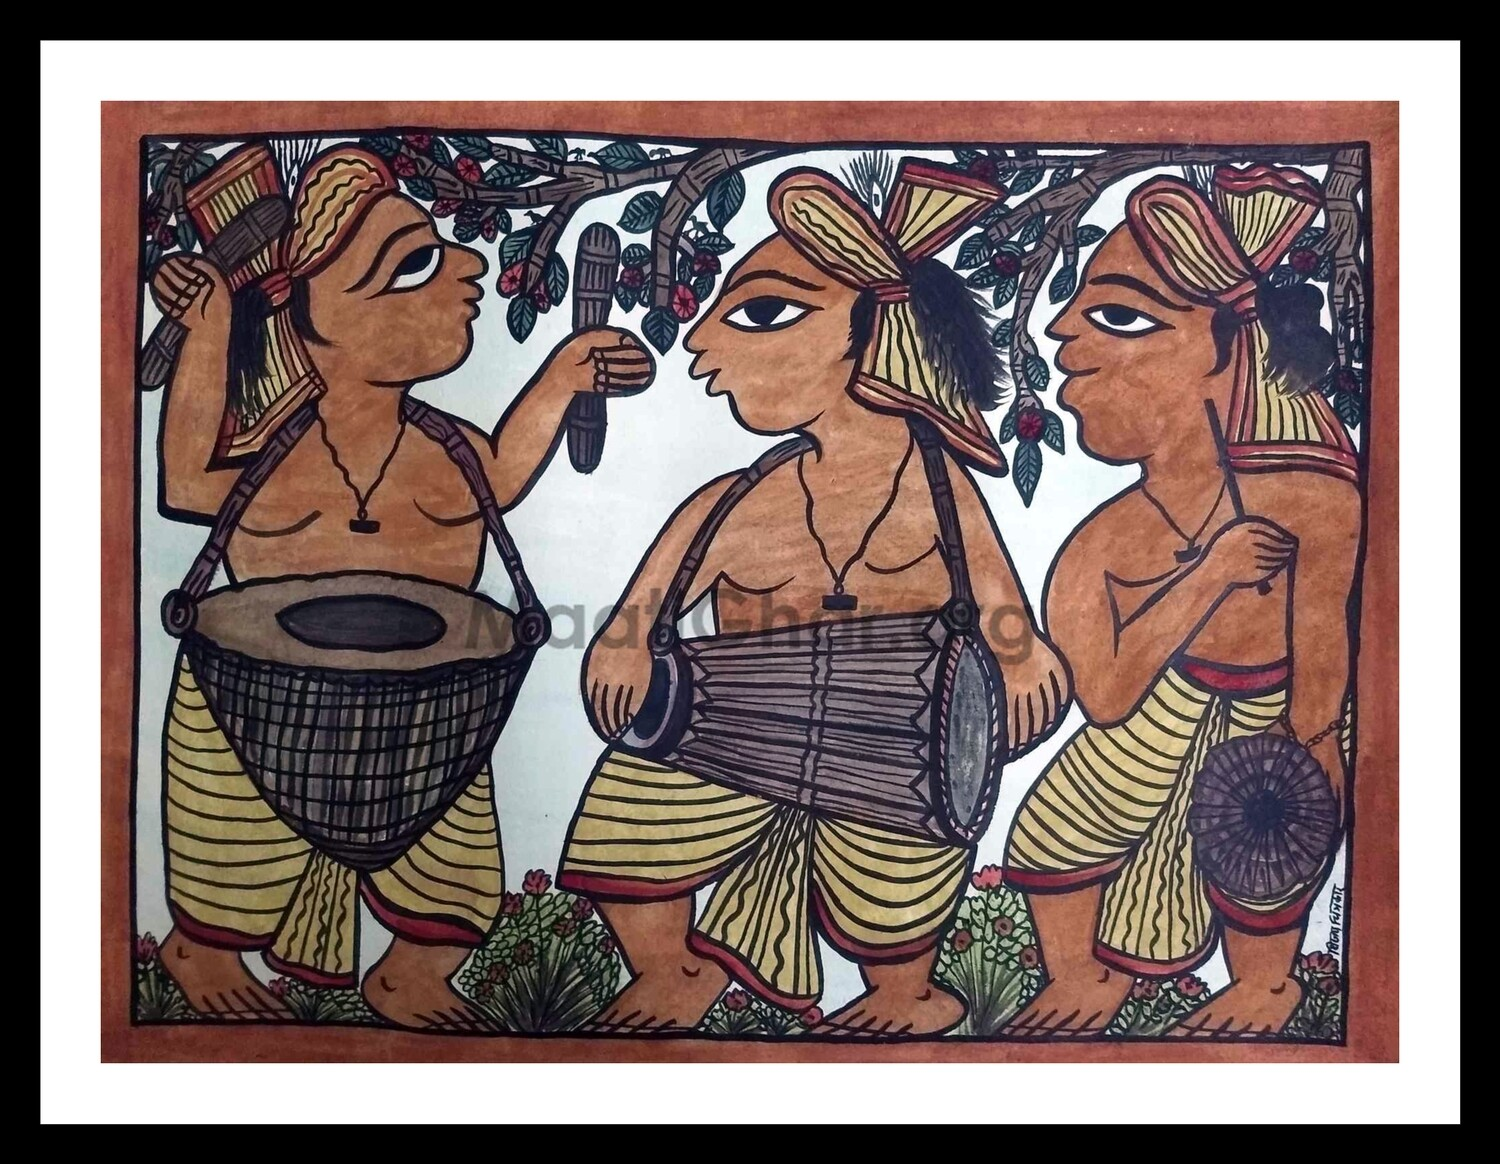 Paitkar Painting - Men with Instruments (30x22 in)